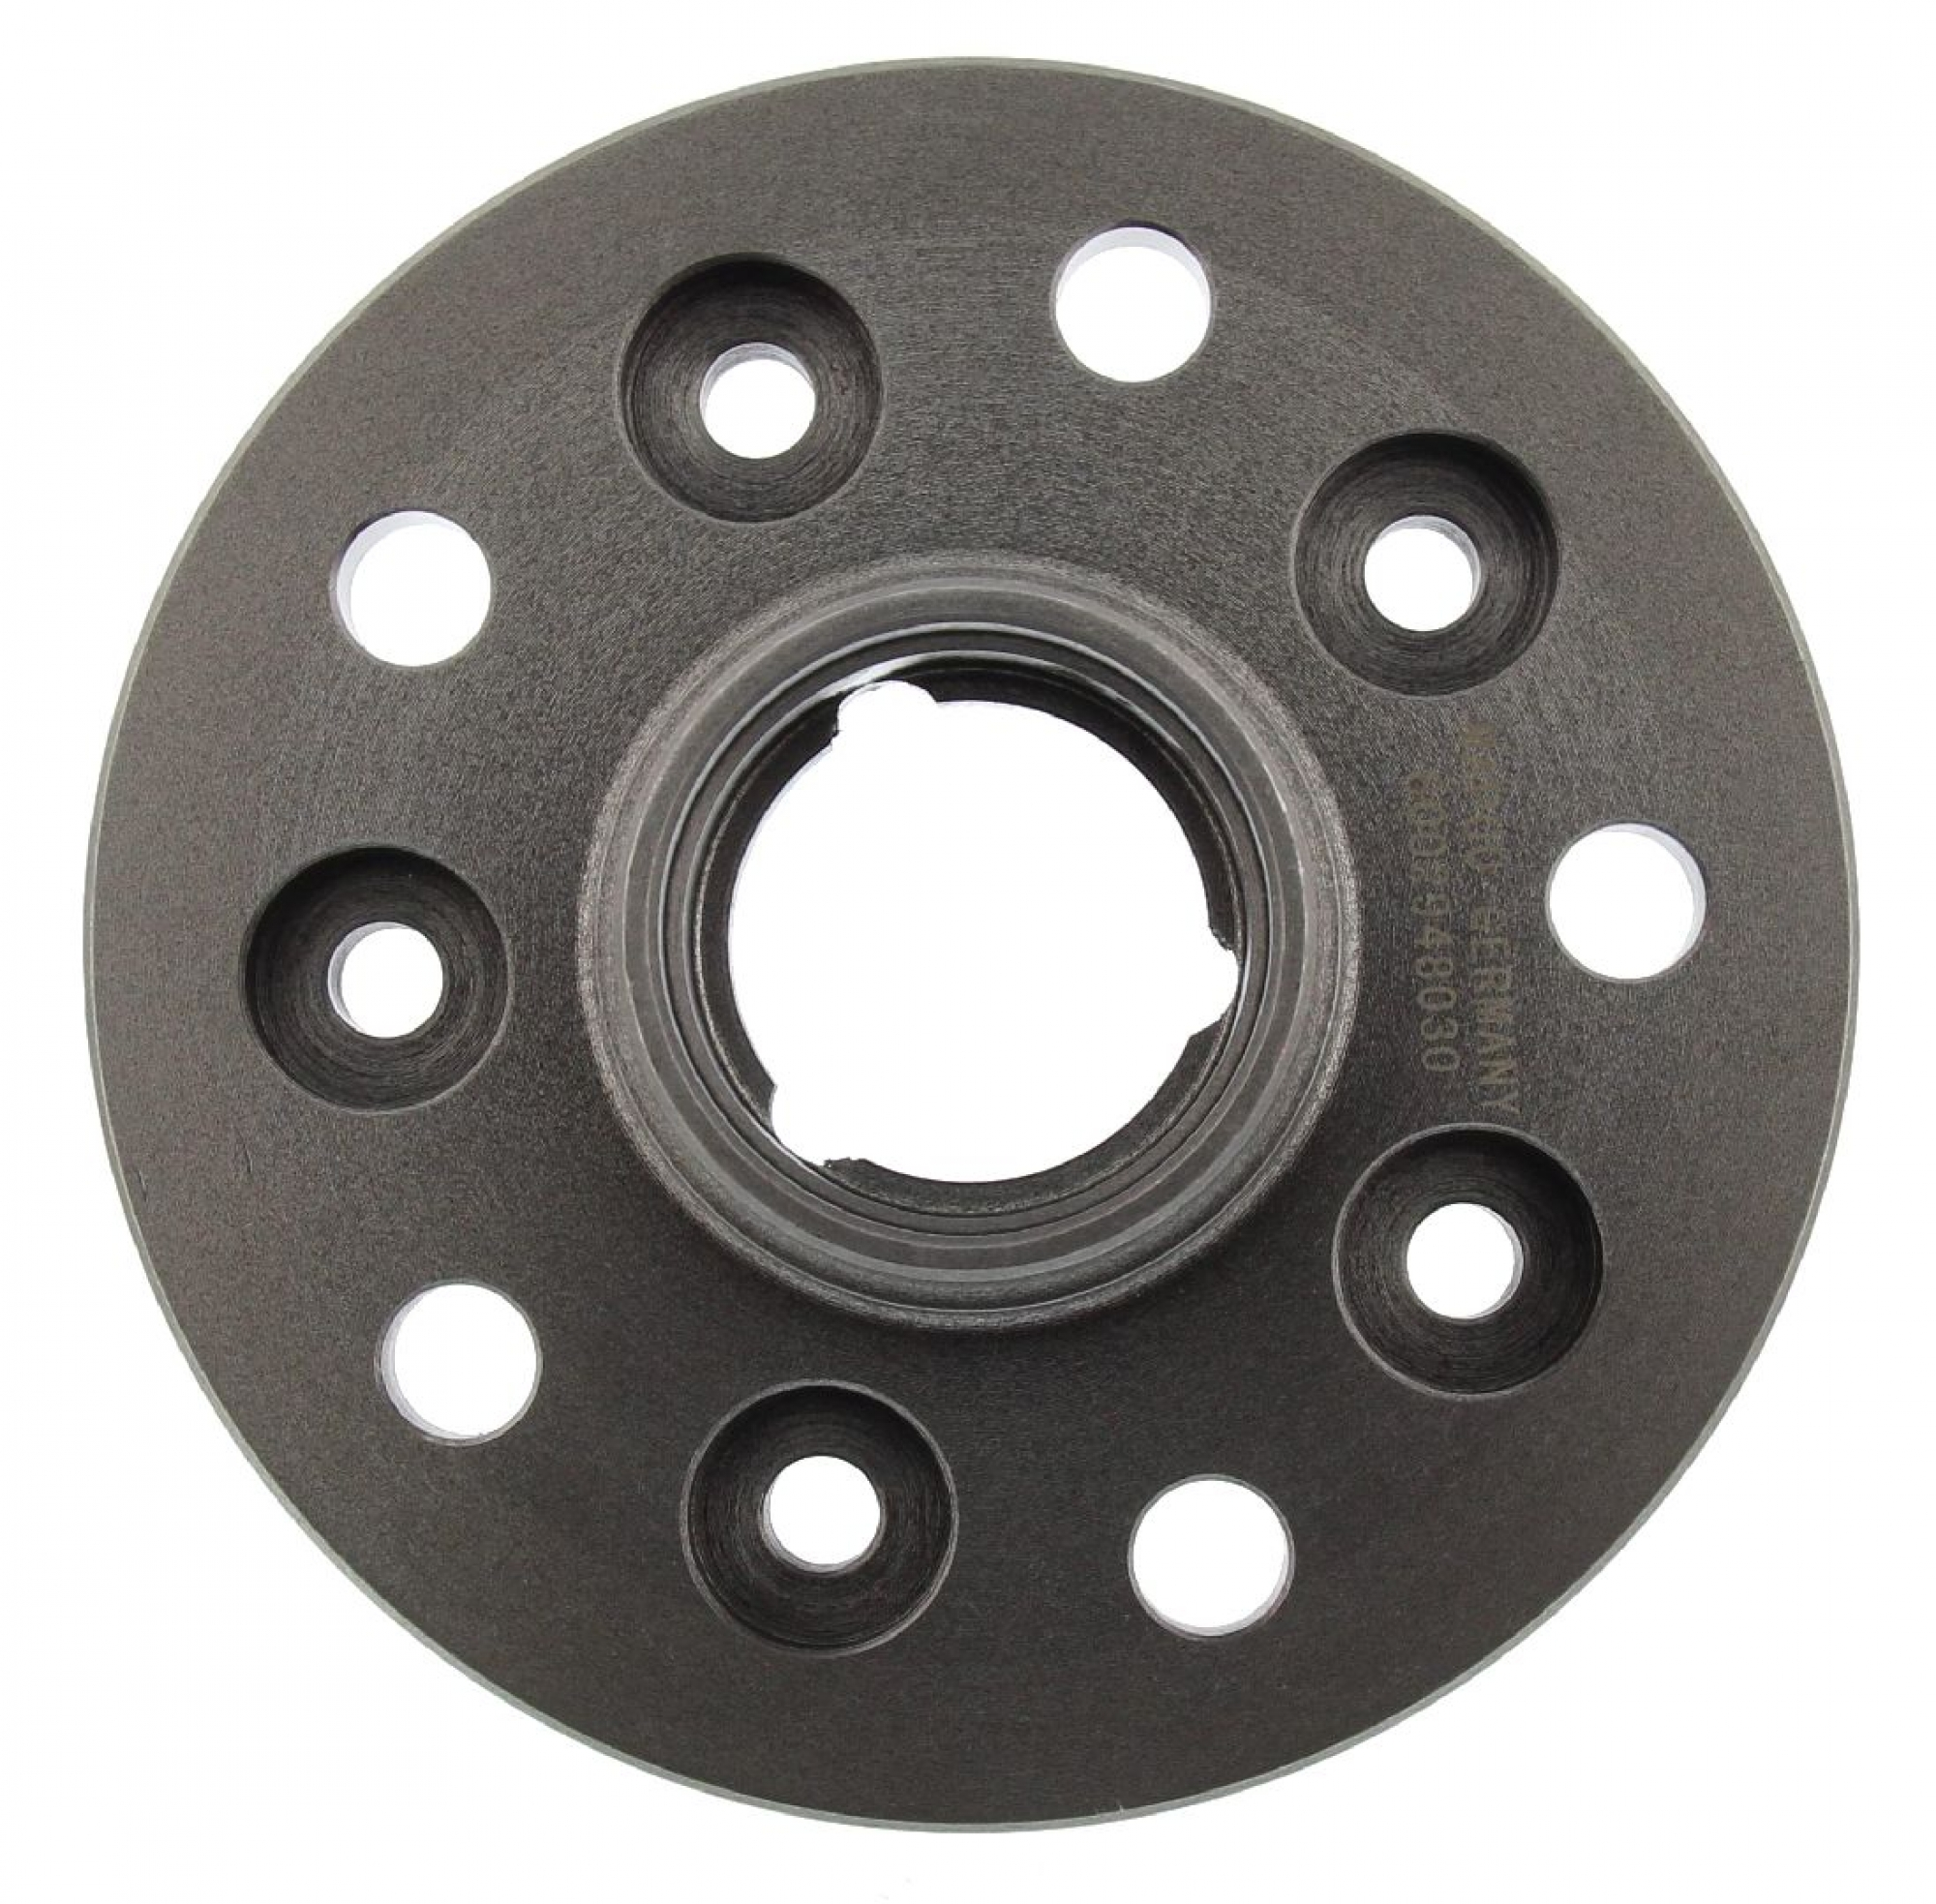 MAPCO 46276 Wheel Hub